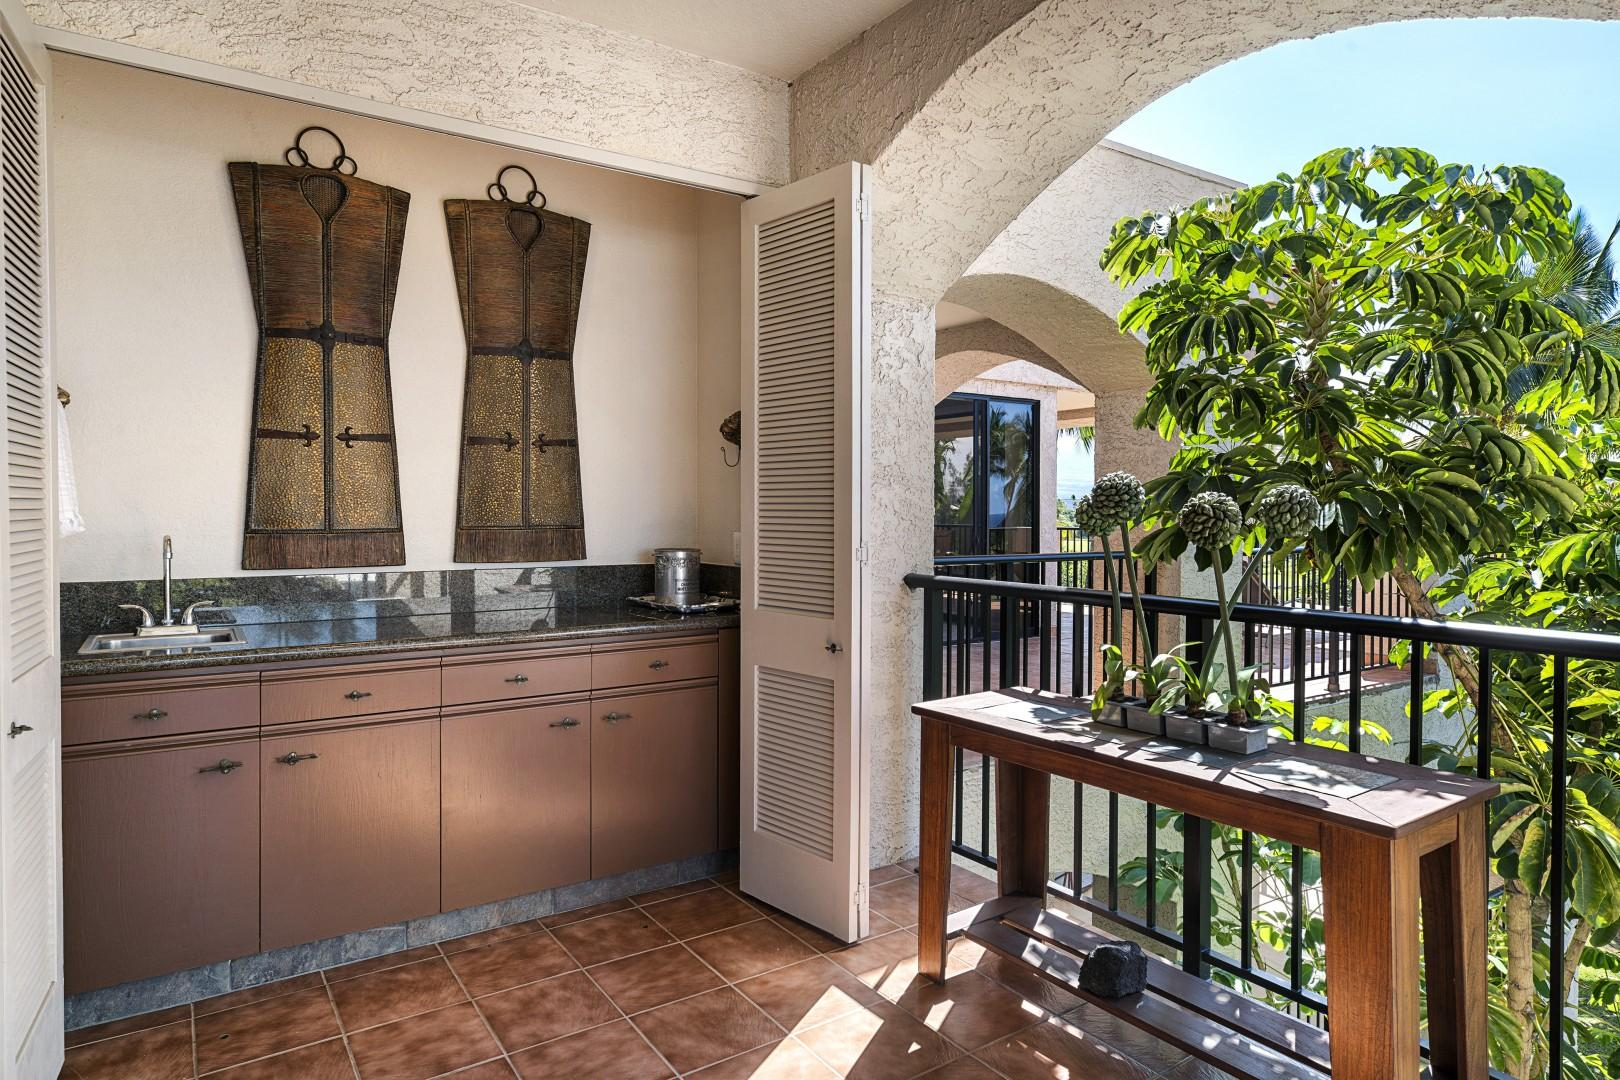 Outdoor wet bar for preparing your favorite drinks!